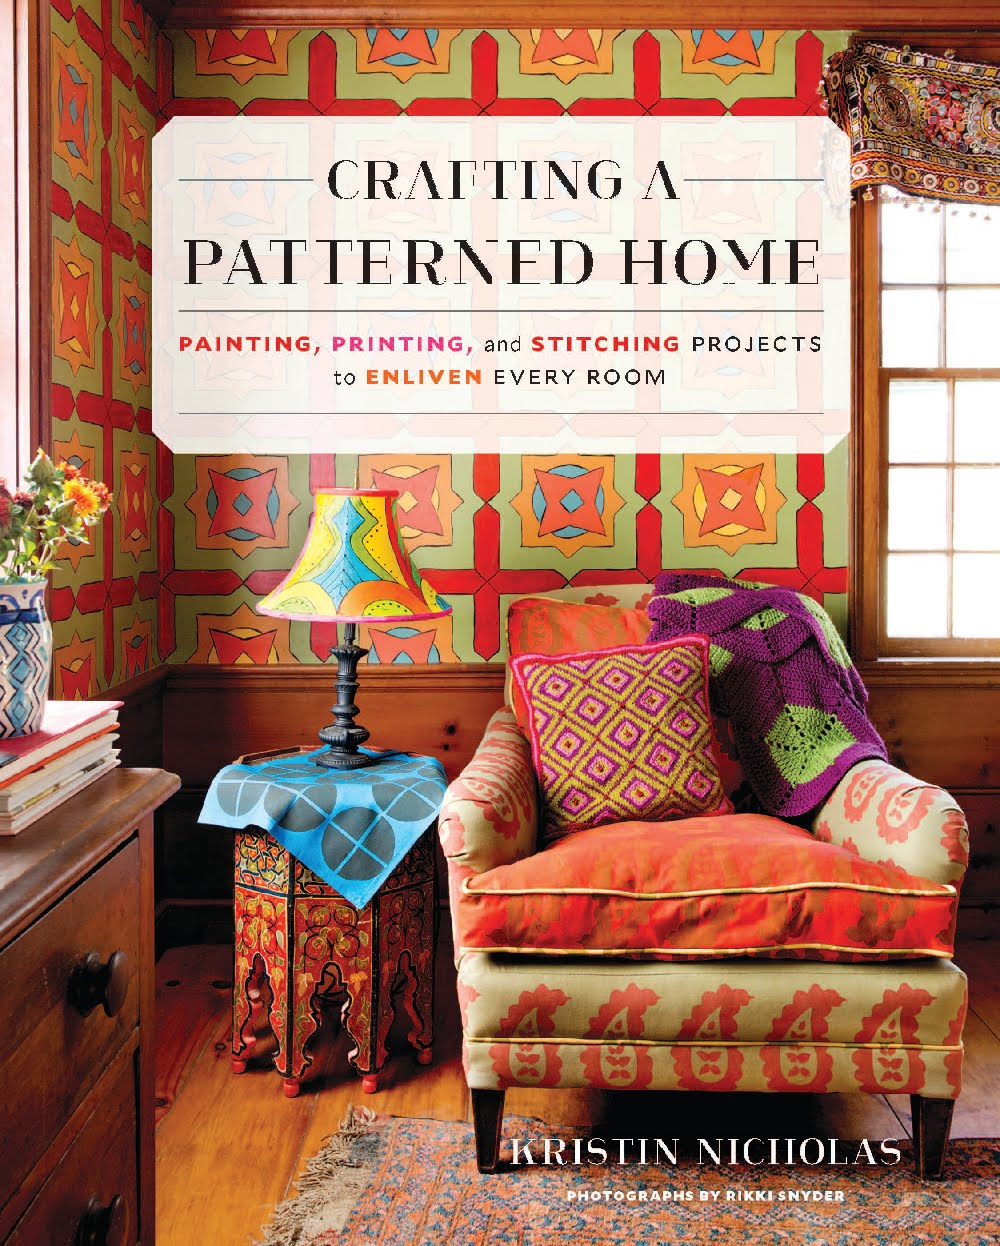 MY NEW BOOK CRAFTING A PATTERNED HOME JUST OUT